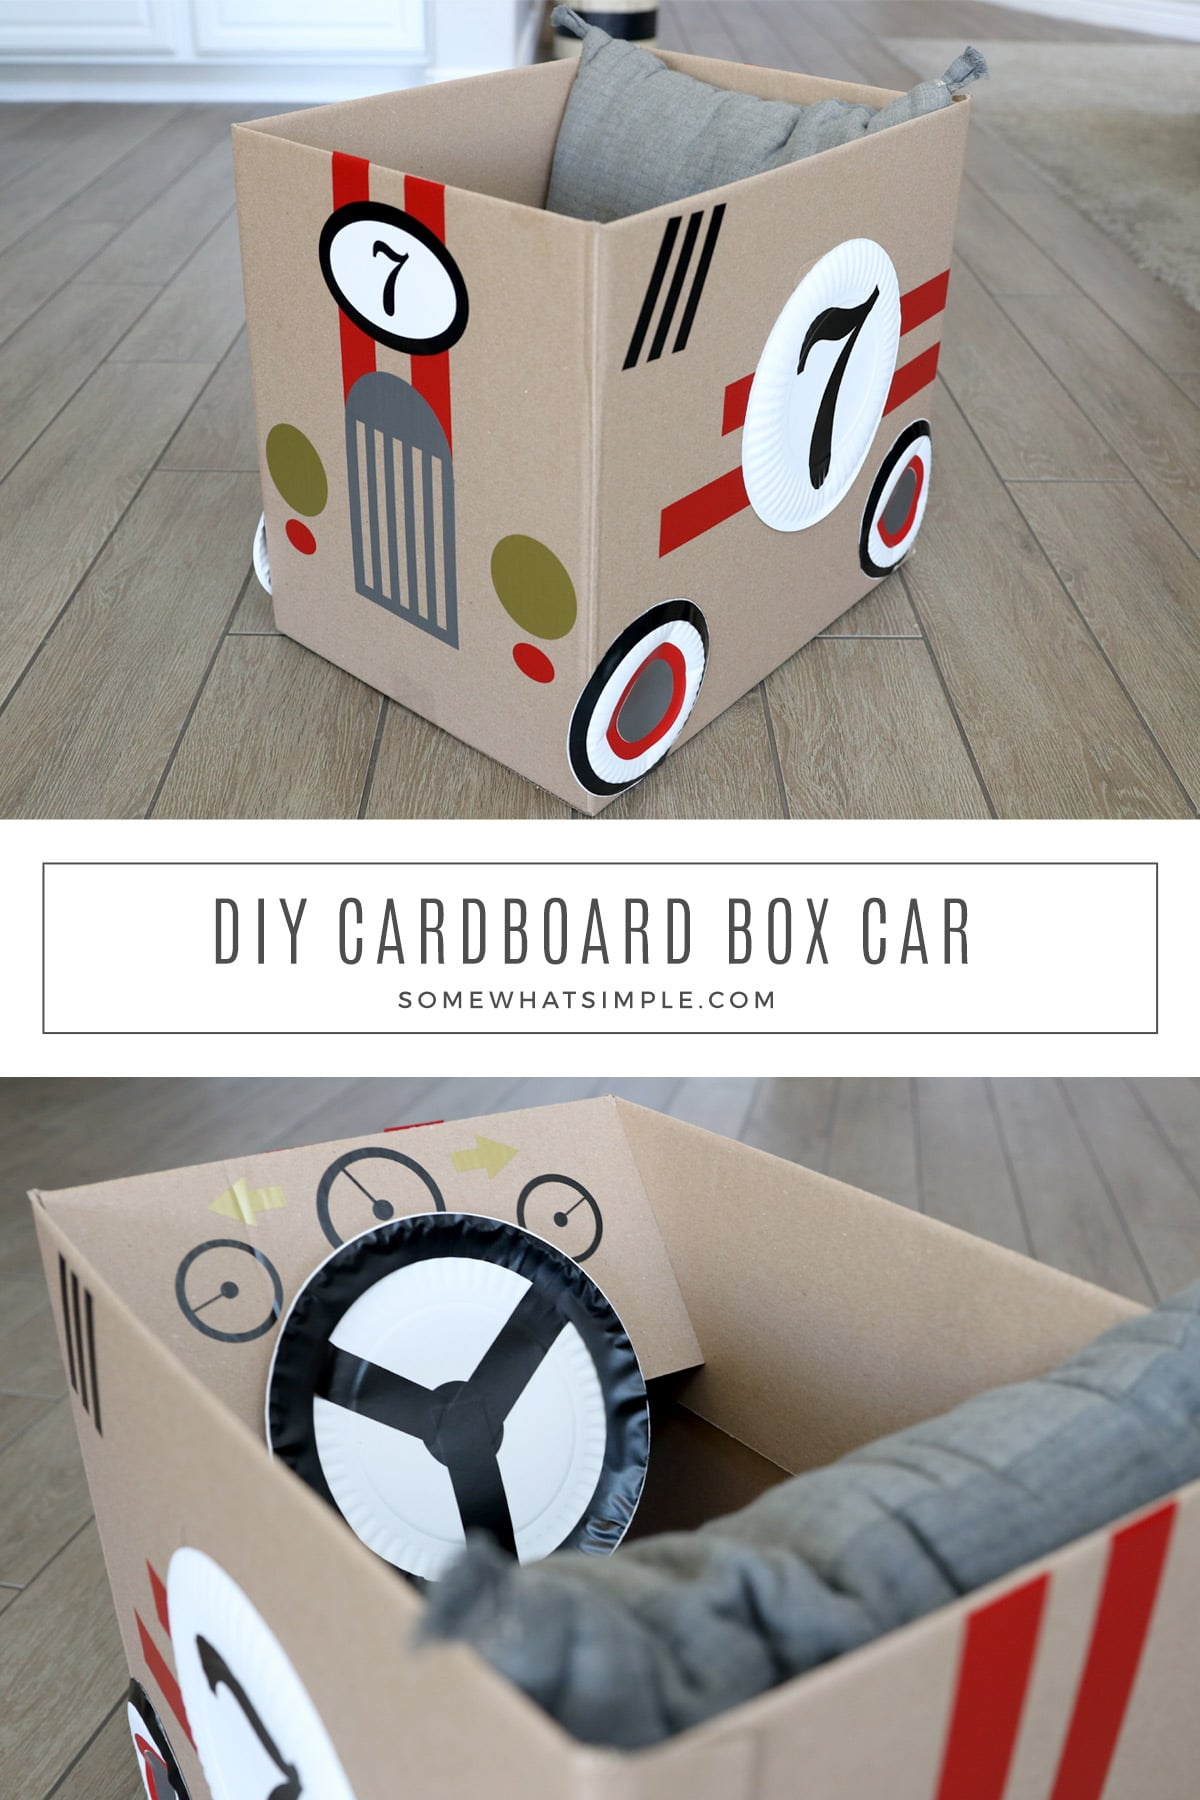 Plan the best movie night at home with this simple drive-in movie idea that the kids will totally LOVE! via @somewhatsimple